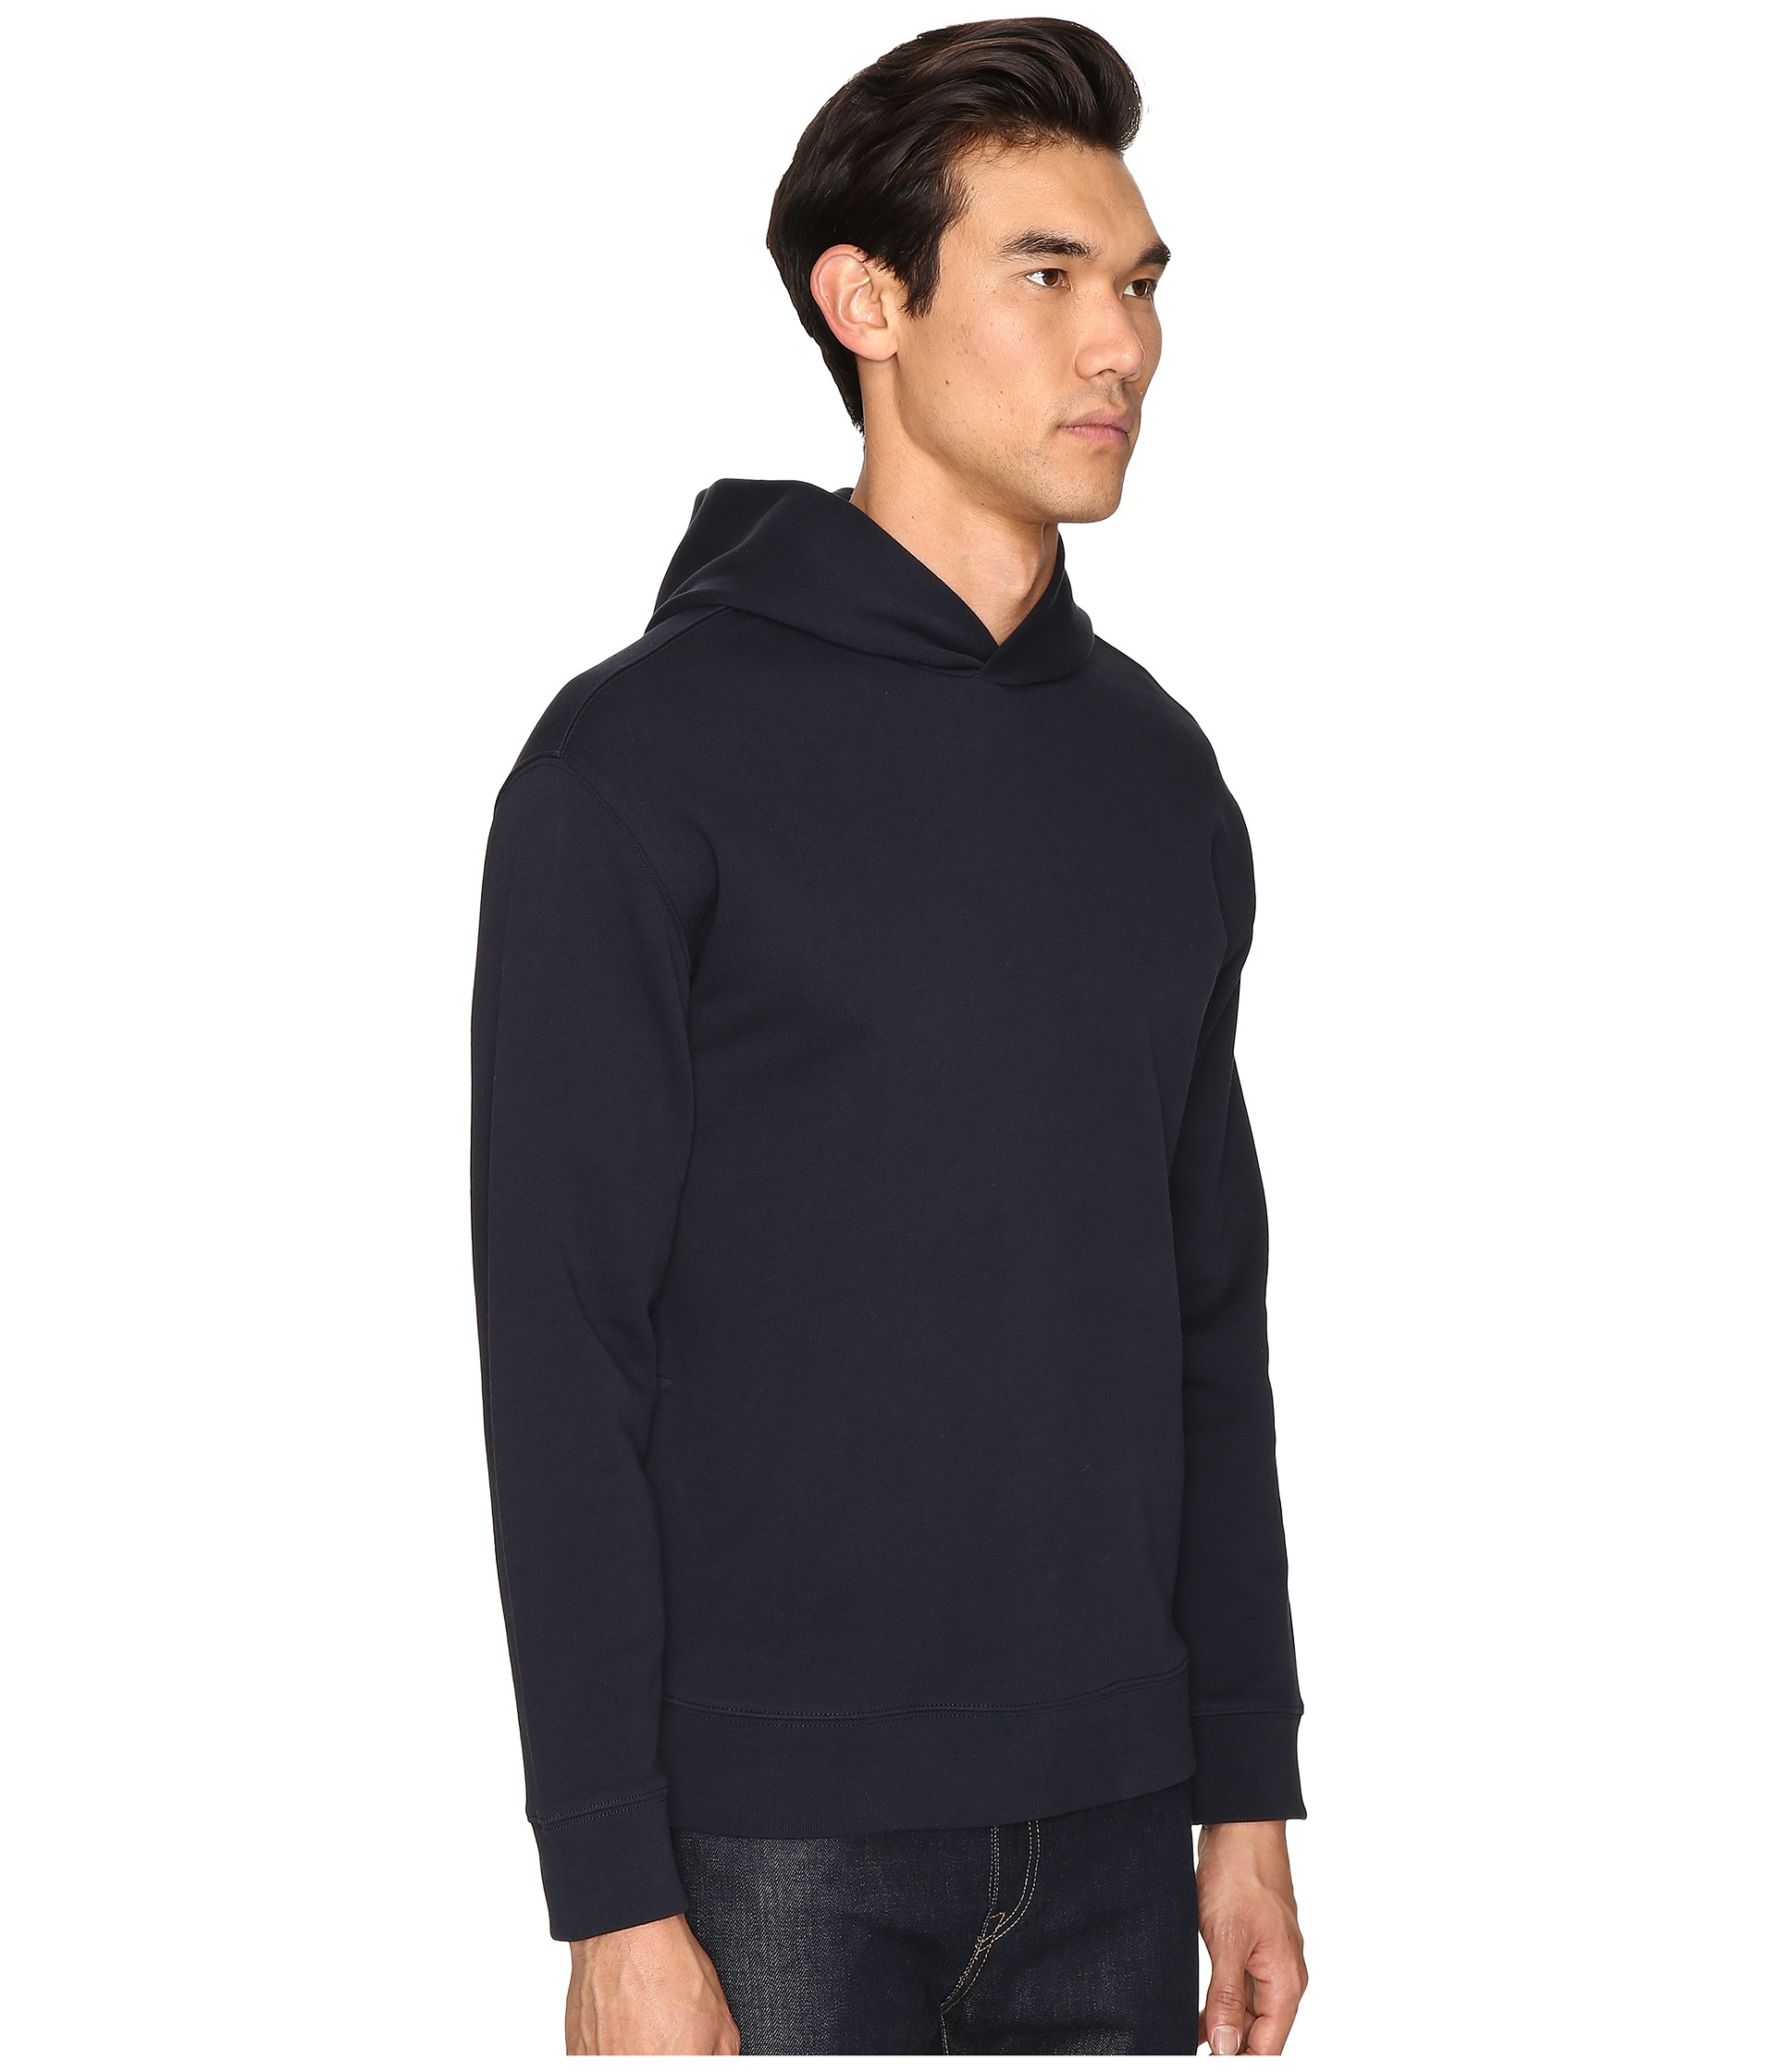 The hoodie also includes a bungee cord adjuster hood and hem, along with cuffs with thumb holes. Inside, the zip hoodie has a soft lining and is finished with a Superdry Mountain patch on one sleeve a.